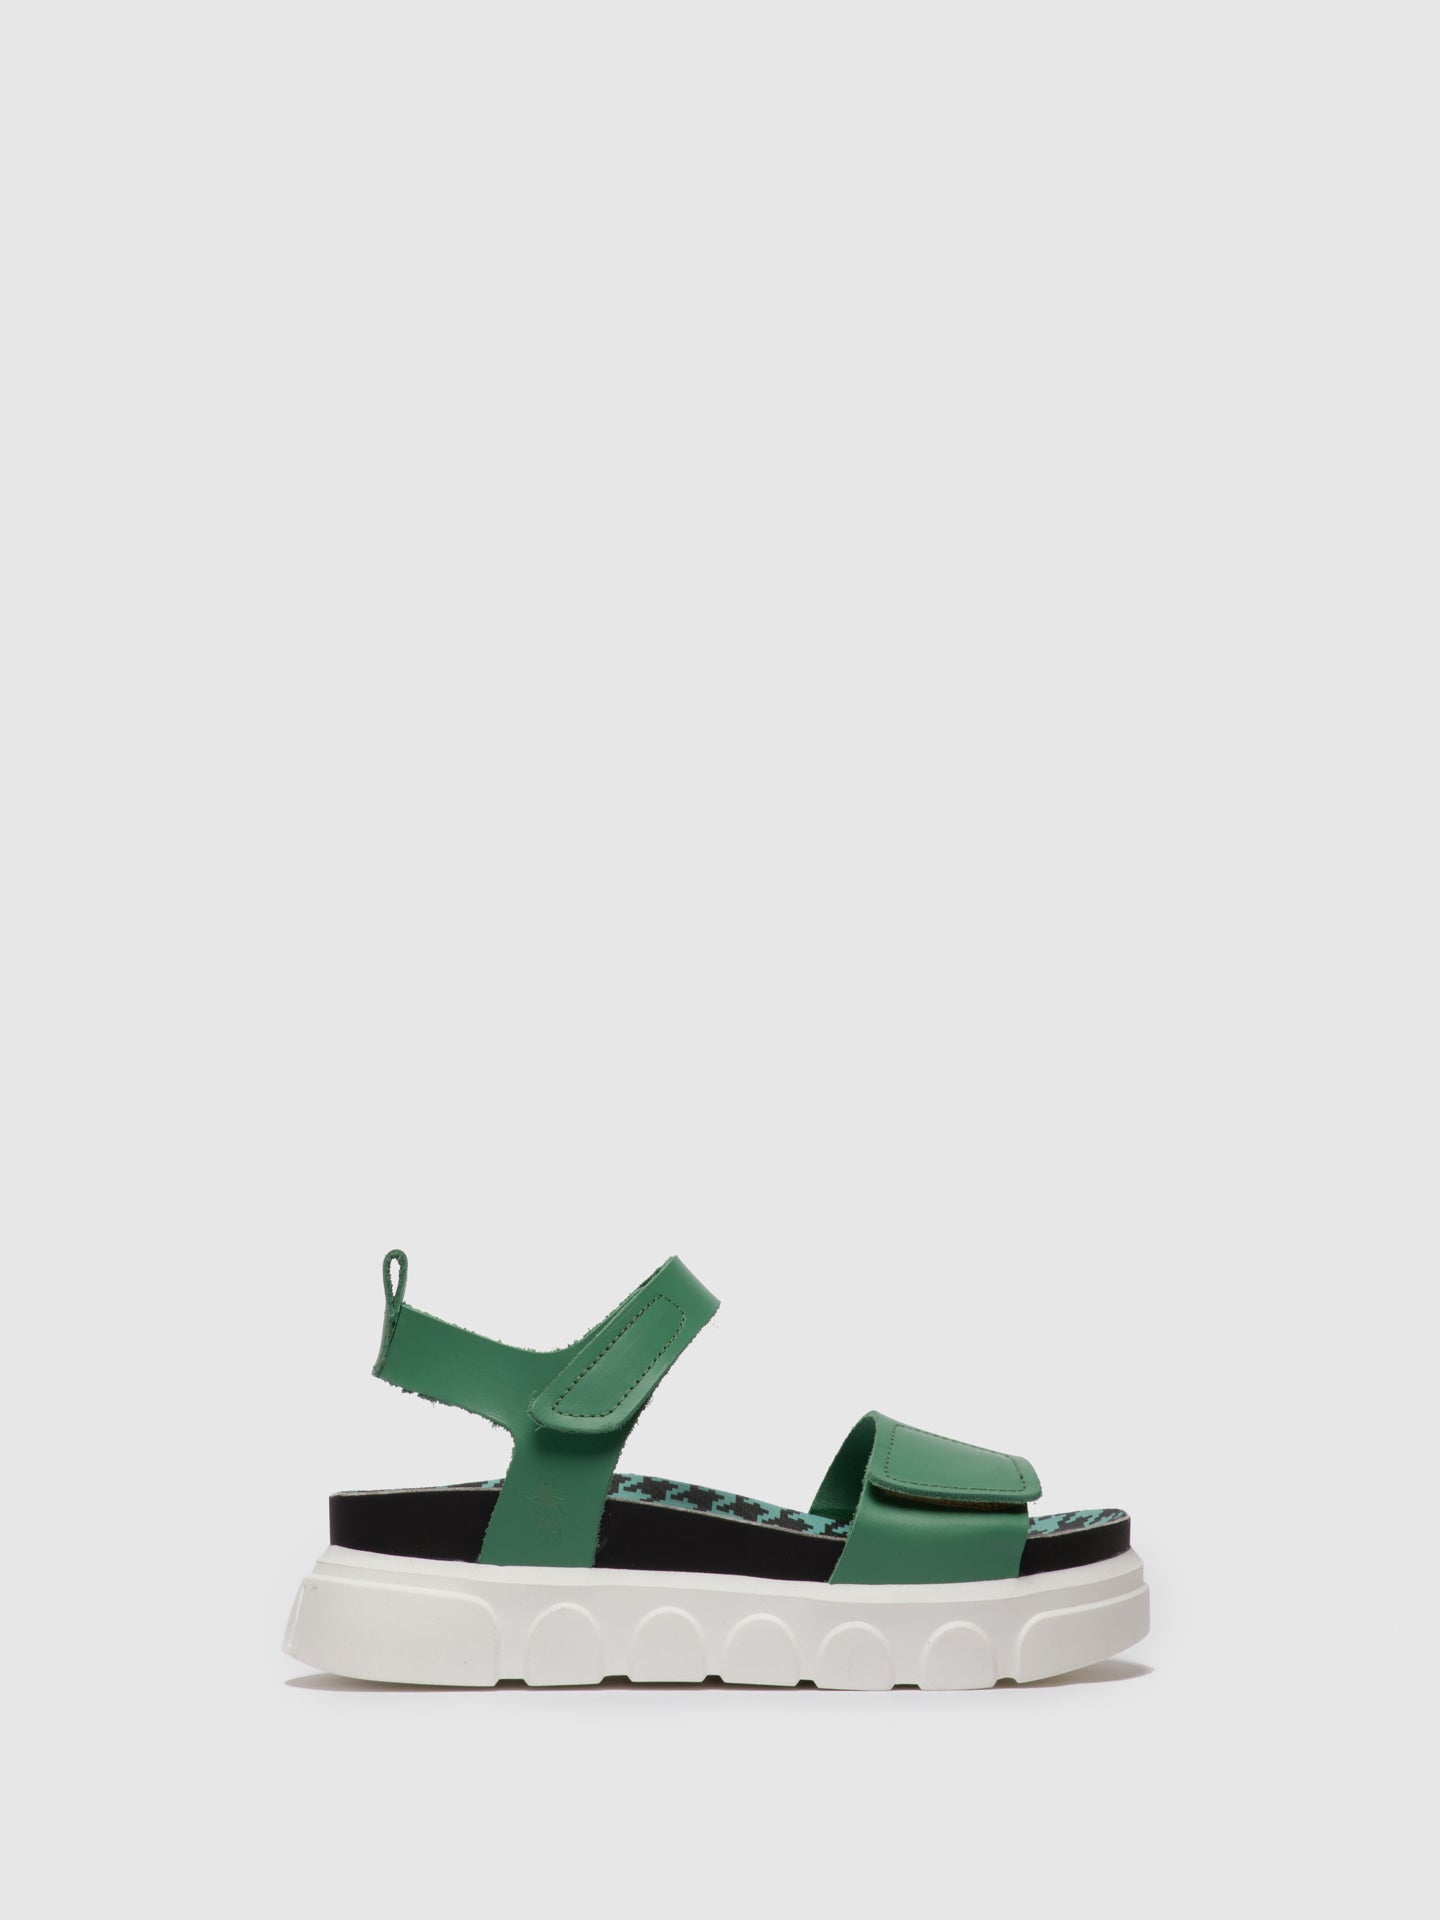 Fly London Green Velcro Sandals